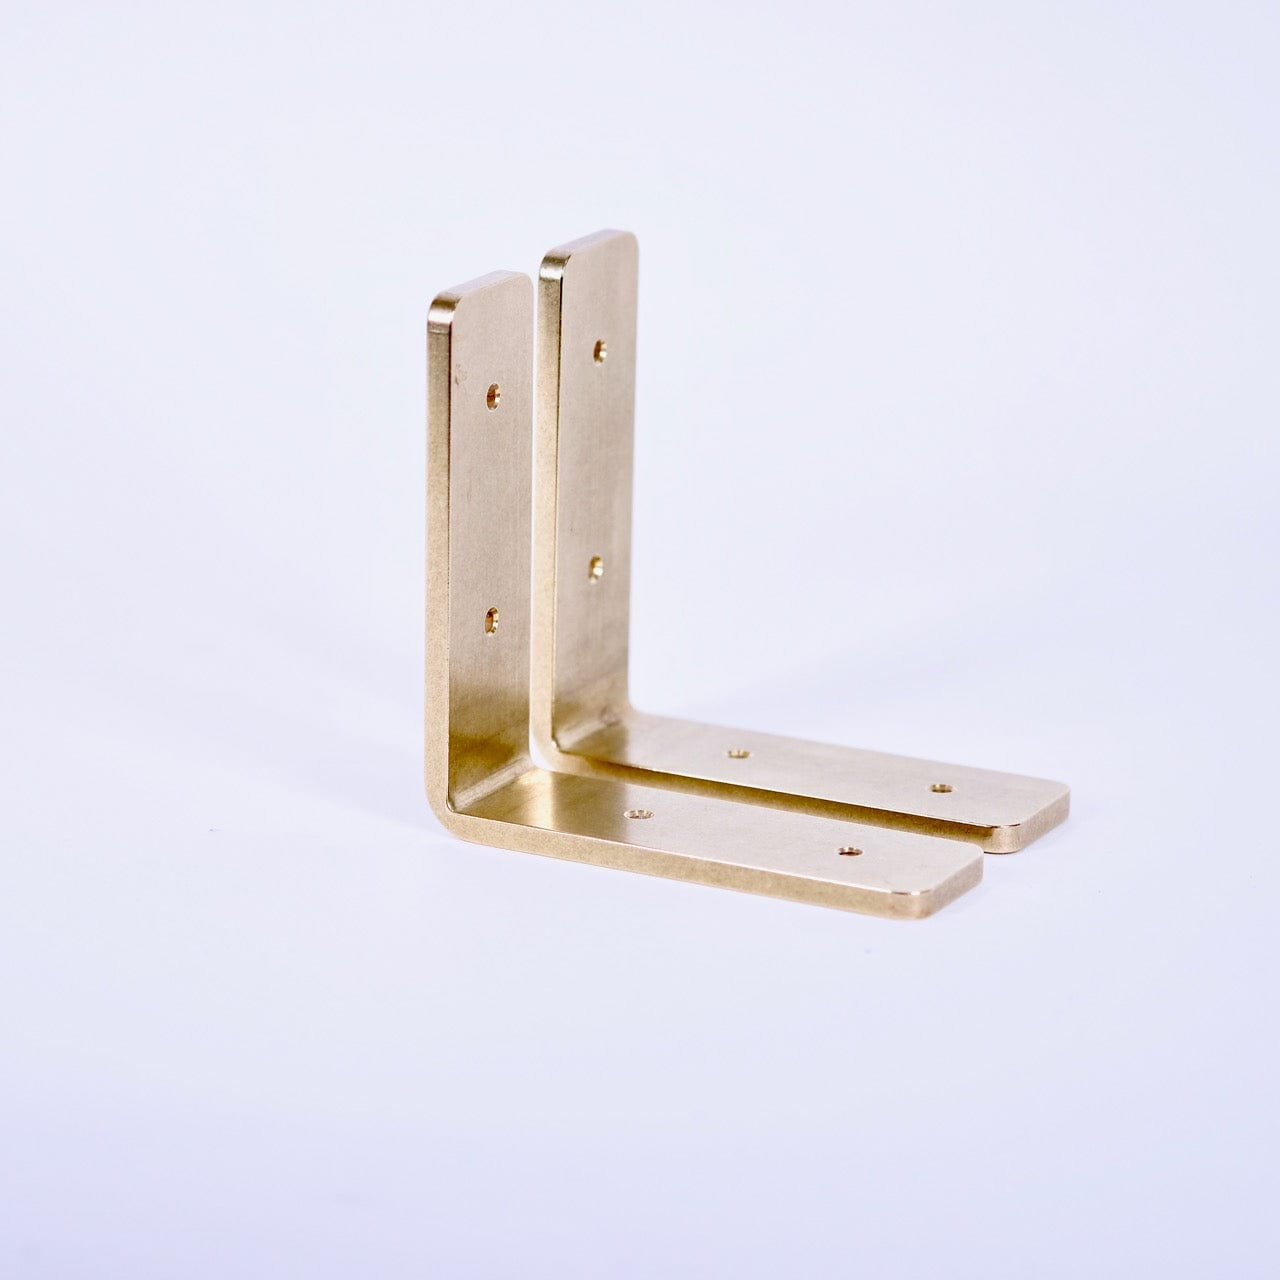 Brass shelf bracket set of 2